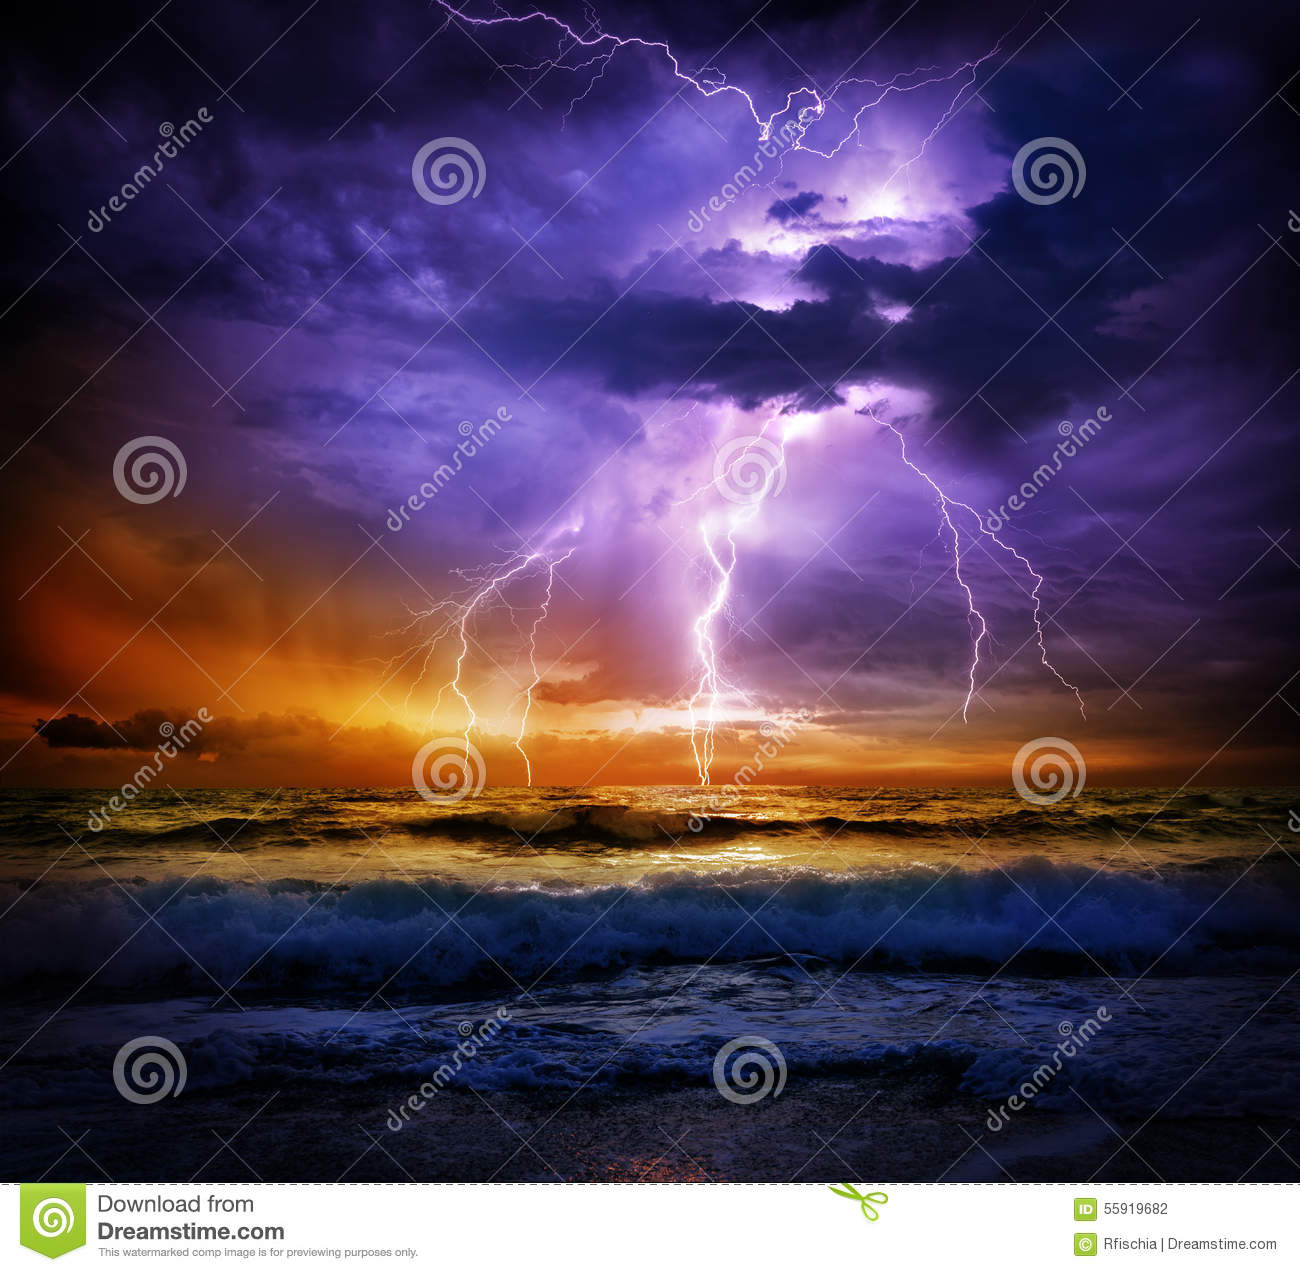 Lightning and storm on sea to the sunset